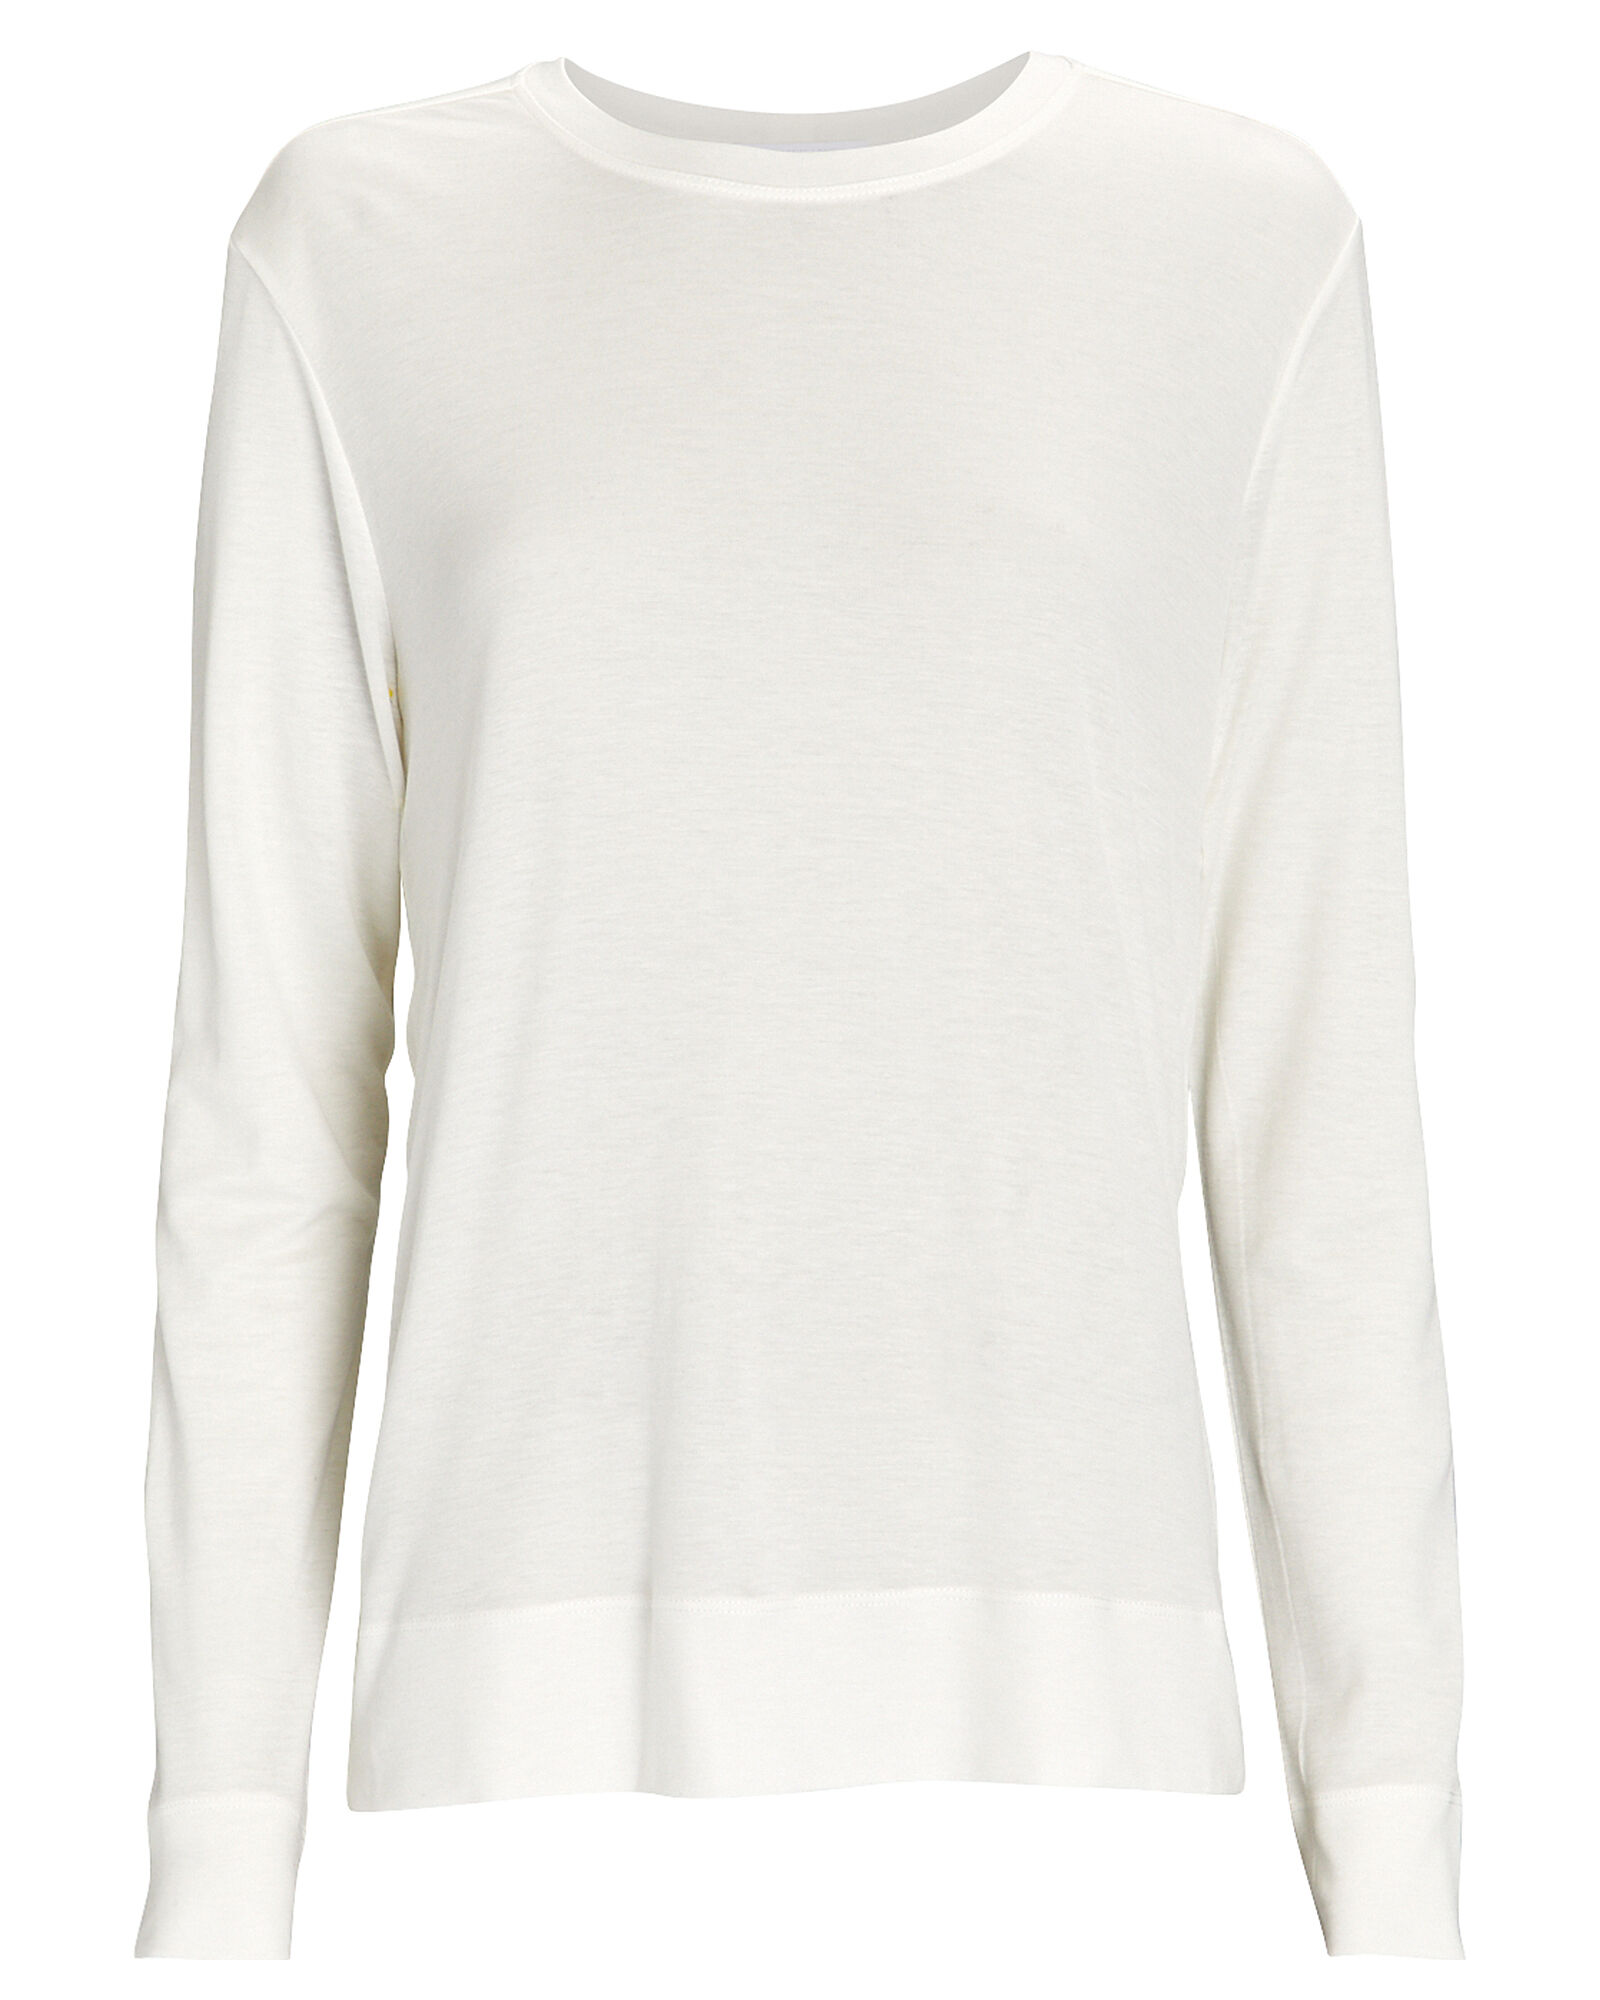 Sync Twisted Long Sleeve T-Shirt, WHITE, hi-res